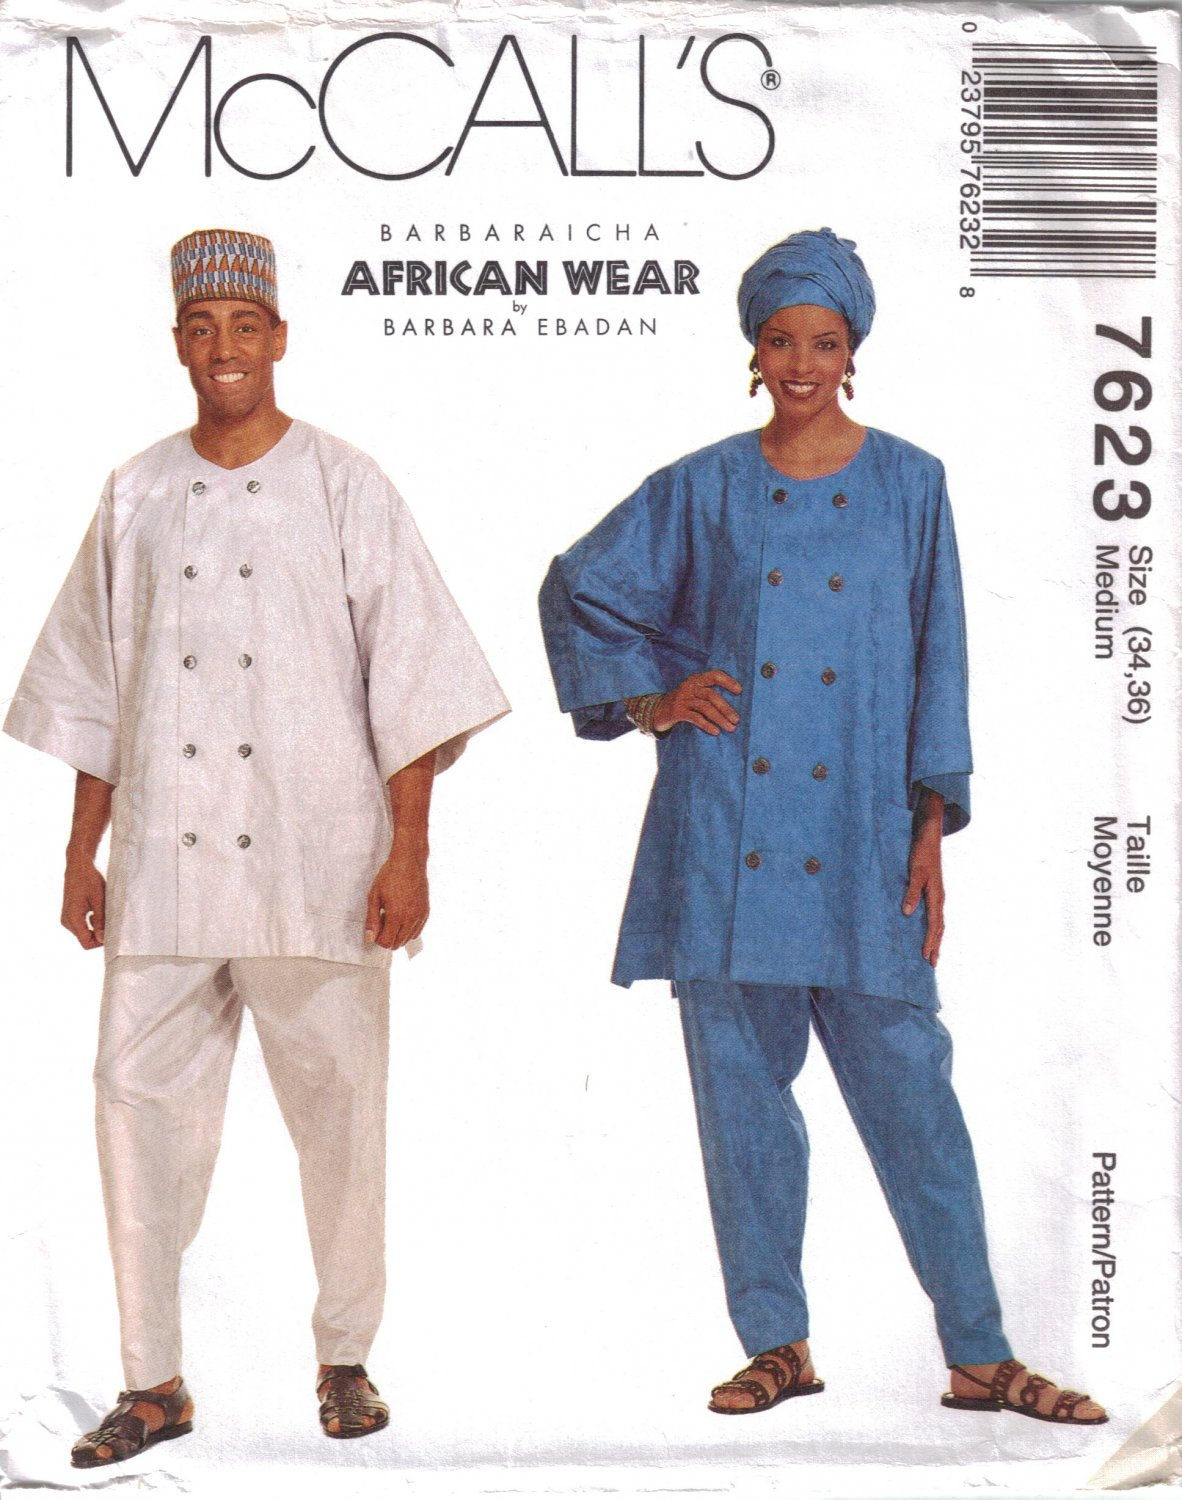 Misses' & Men's Top, Pull-On Pants & Headwrap Sewing Pattern Size 34-36 McCall's 7623 UNCUT